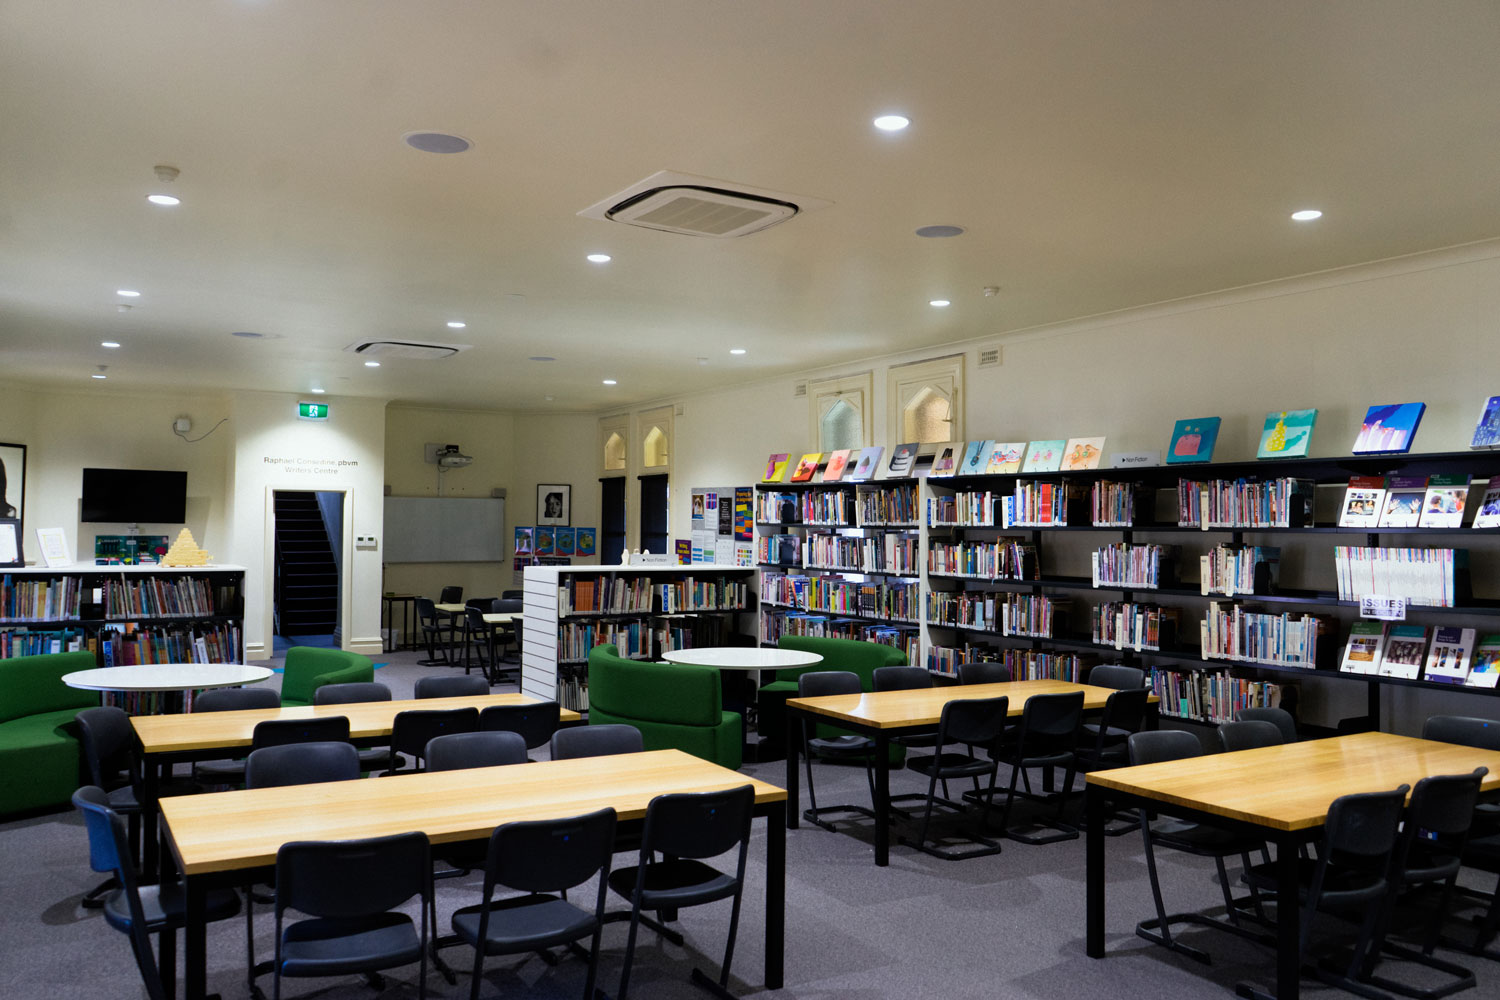 Library Learning Space